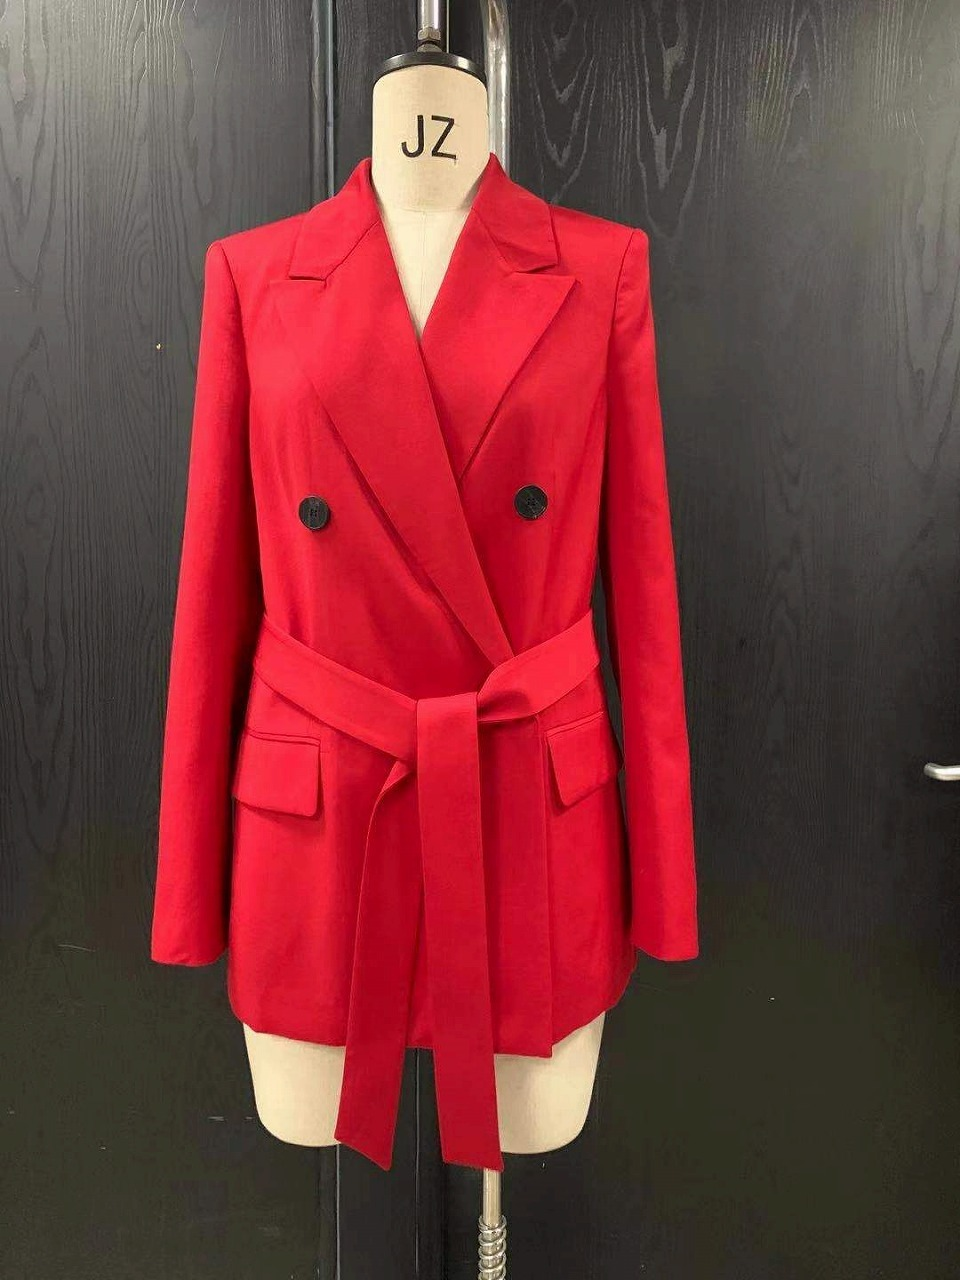 Womens red suit